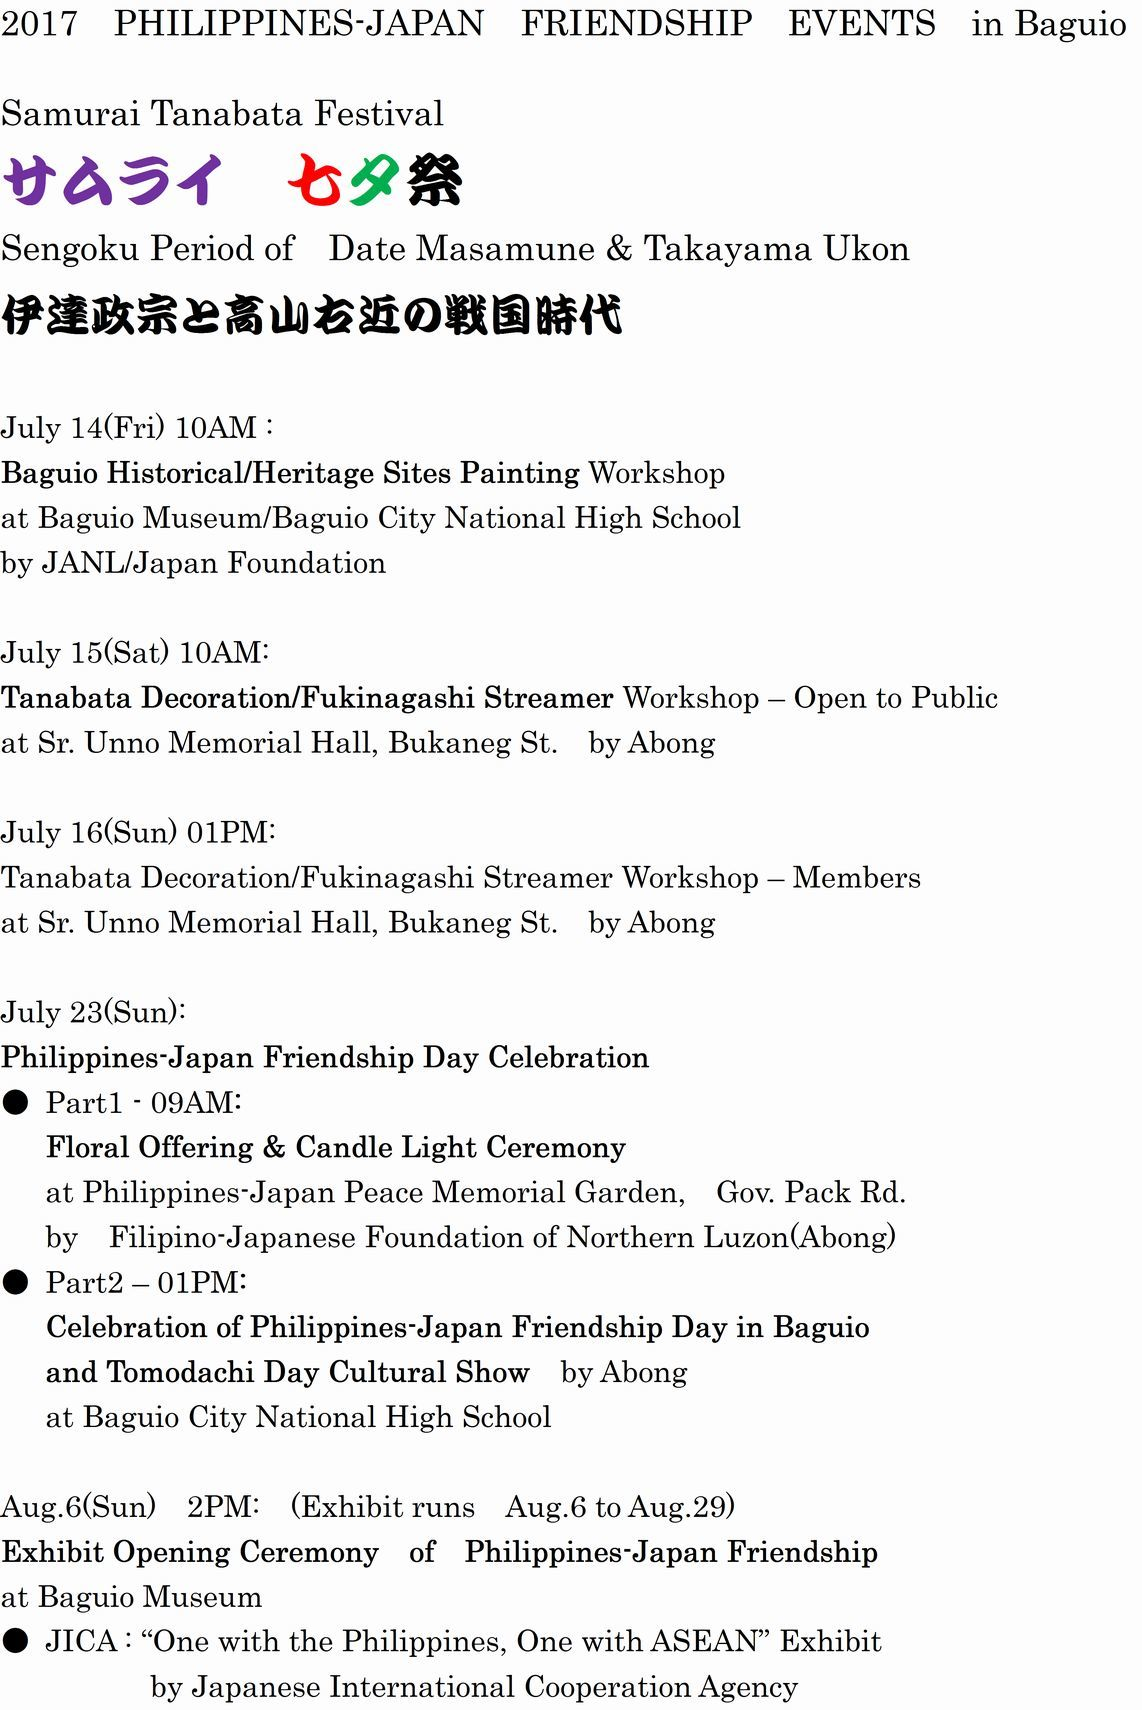 PRESS RELEASE: 2017 PHILIPPINES-JAPAN FRIENDSHIP MONTH EVENTS IN BAGUIO CITY_a0109542_16471774.jpg